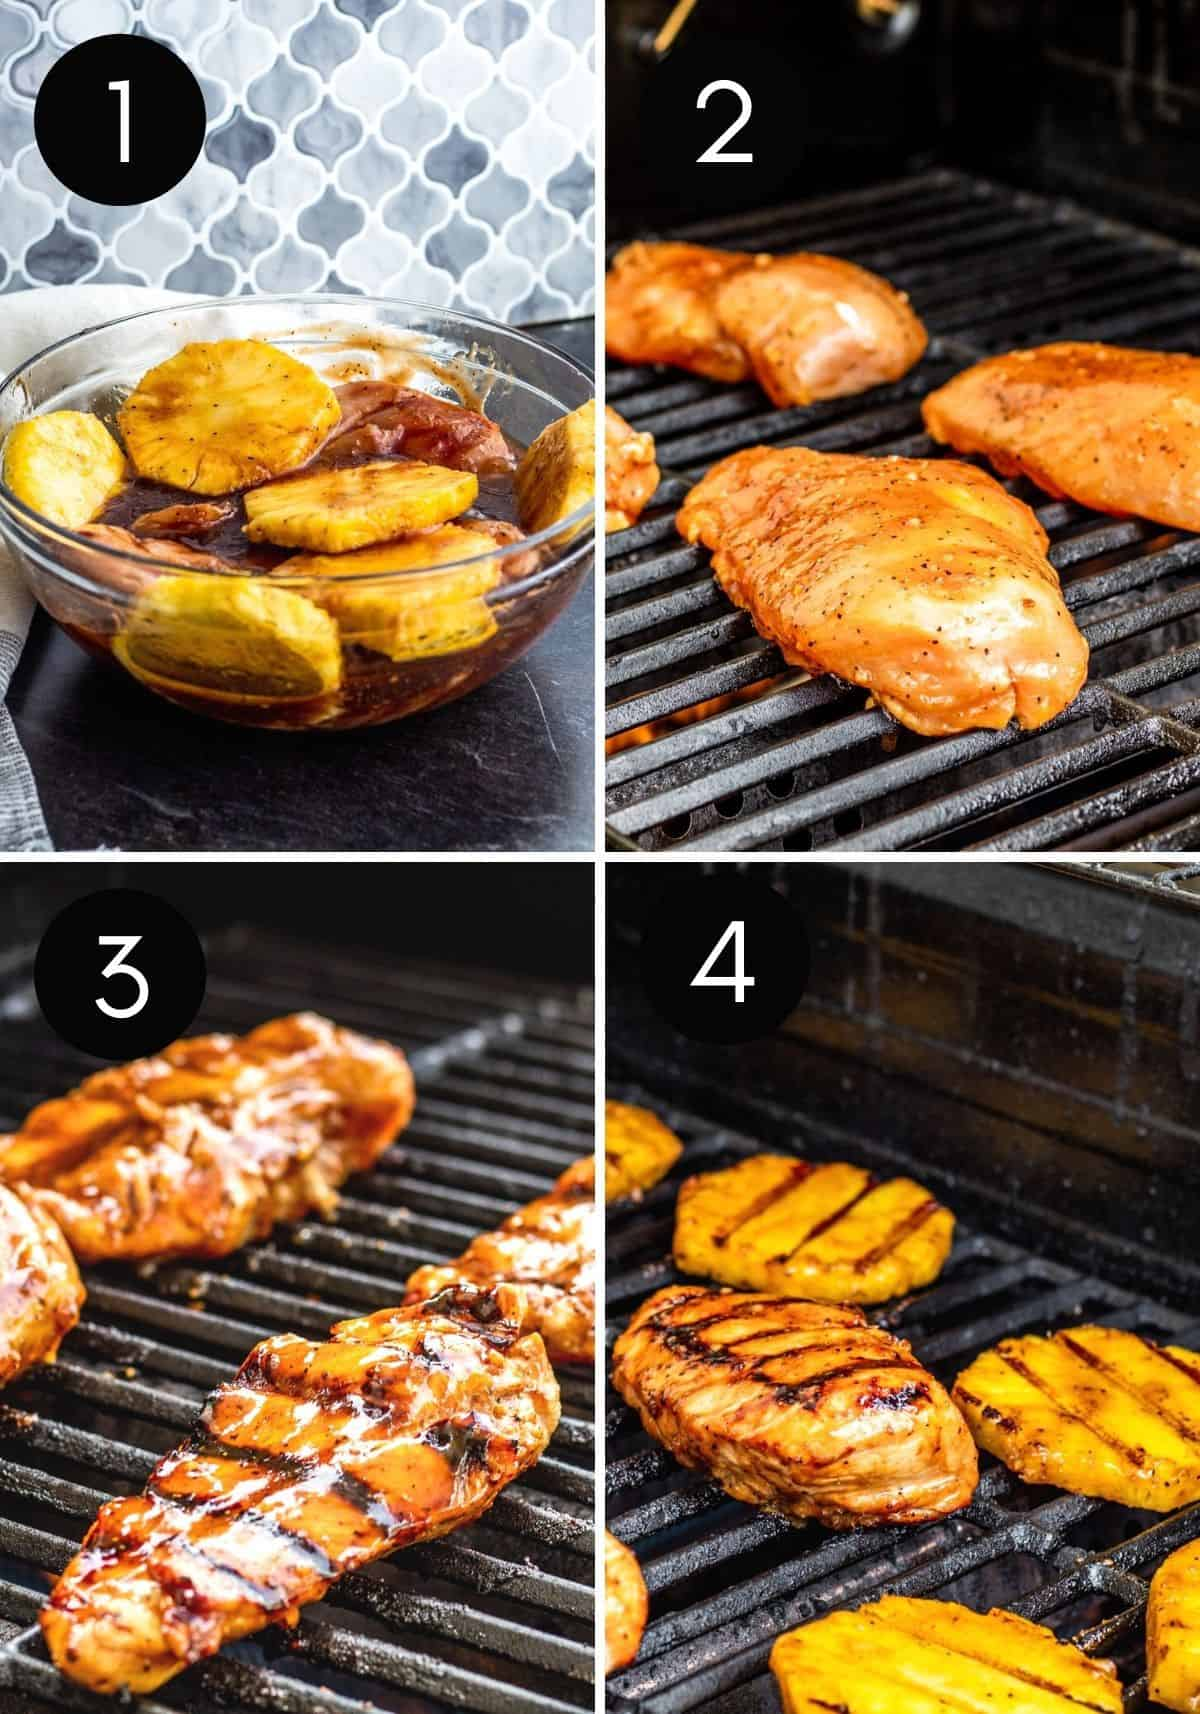 Four image collage showing chicken being prepped and grilled.